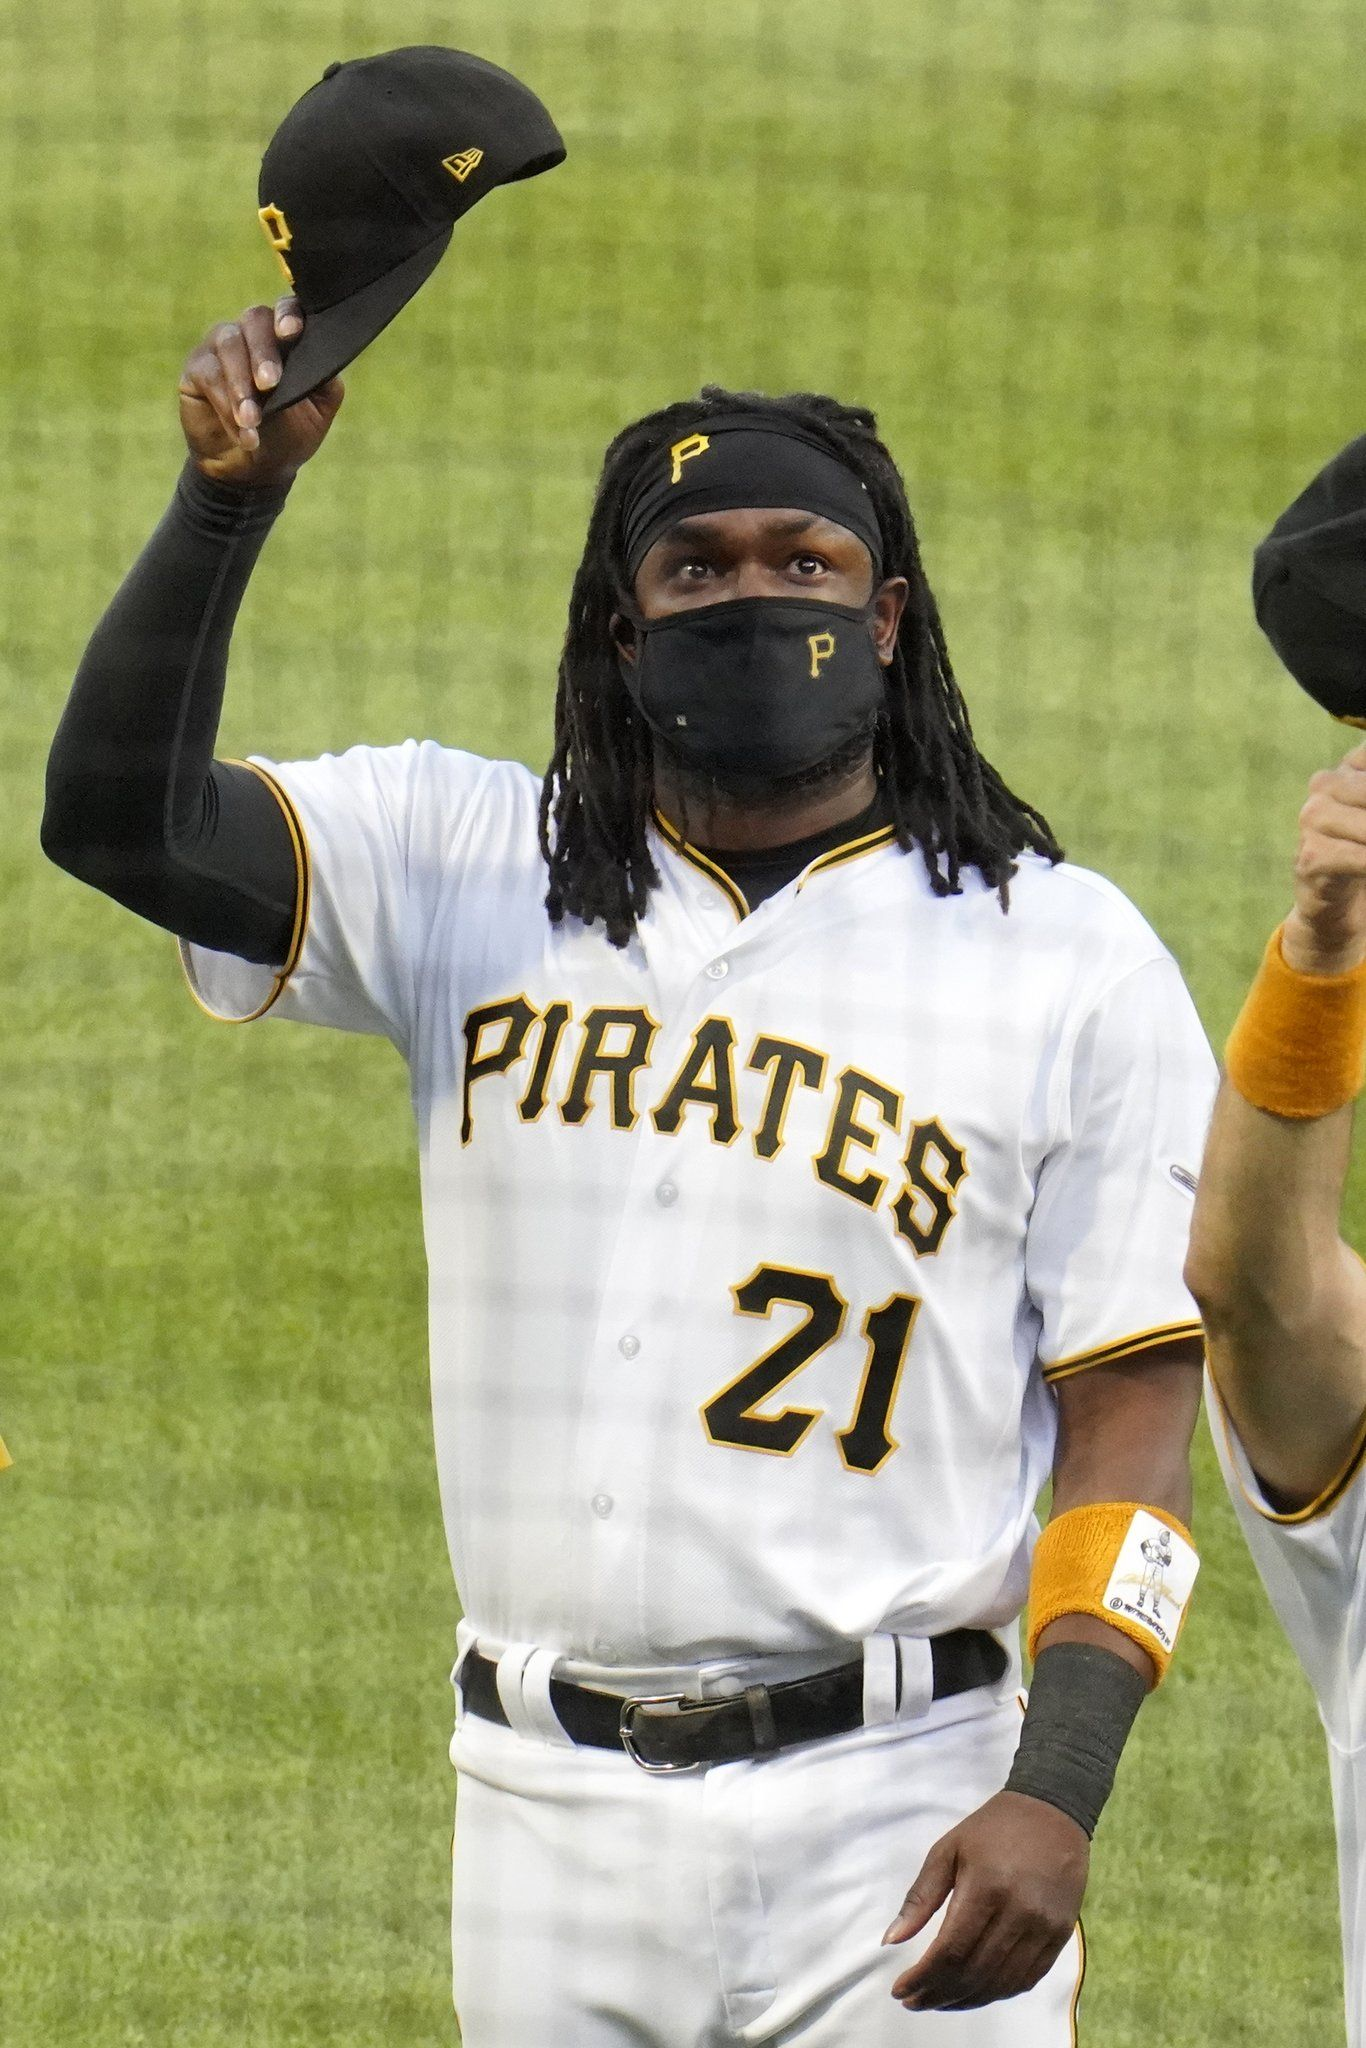 Mlb On Twitter For The First Time In 47 Years Pirates Players Are Wearing The No 21 Clementeday In 2020 Mlb The Show Mlb Mlb Pirates